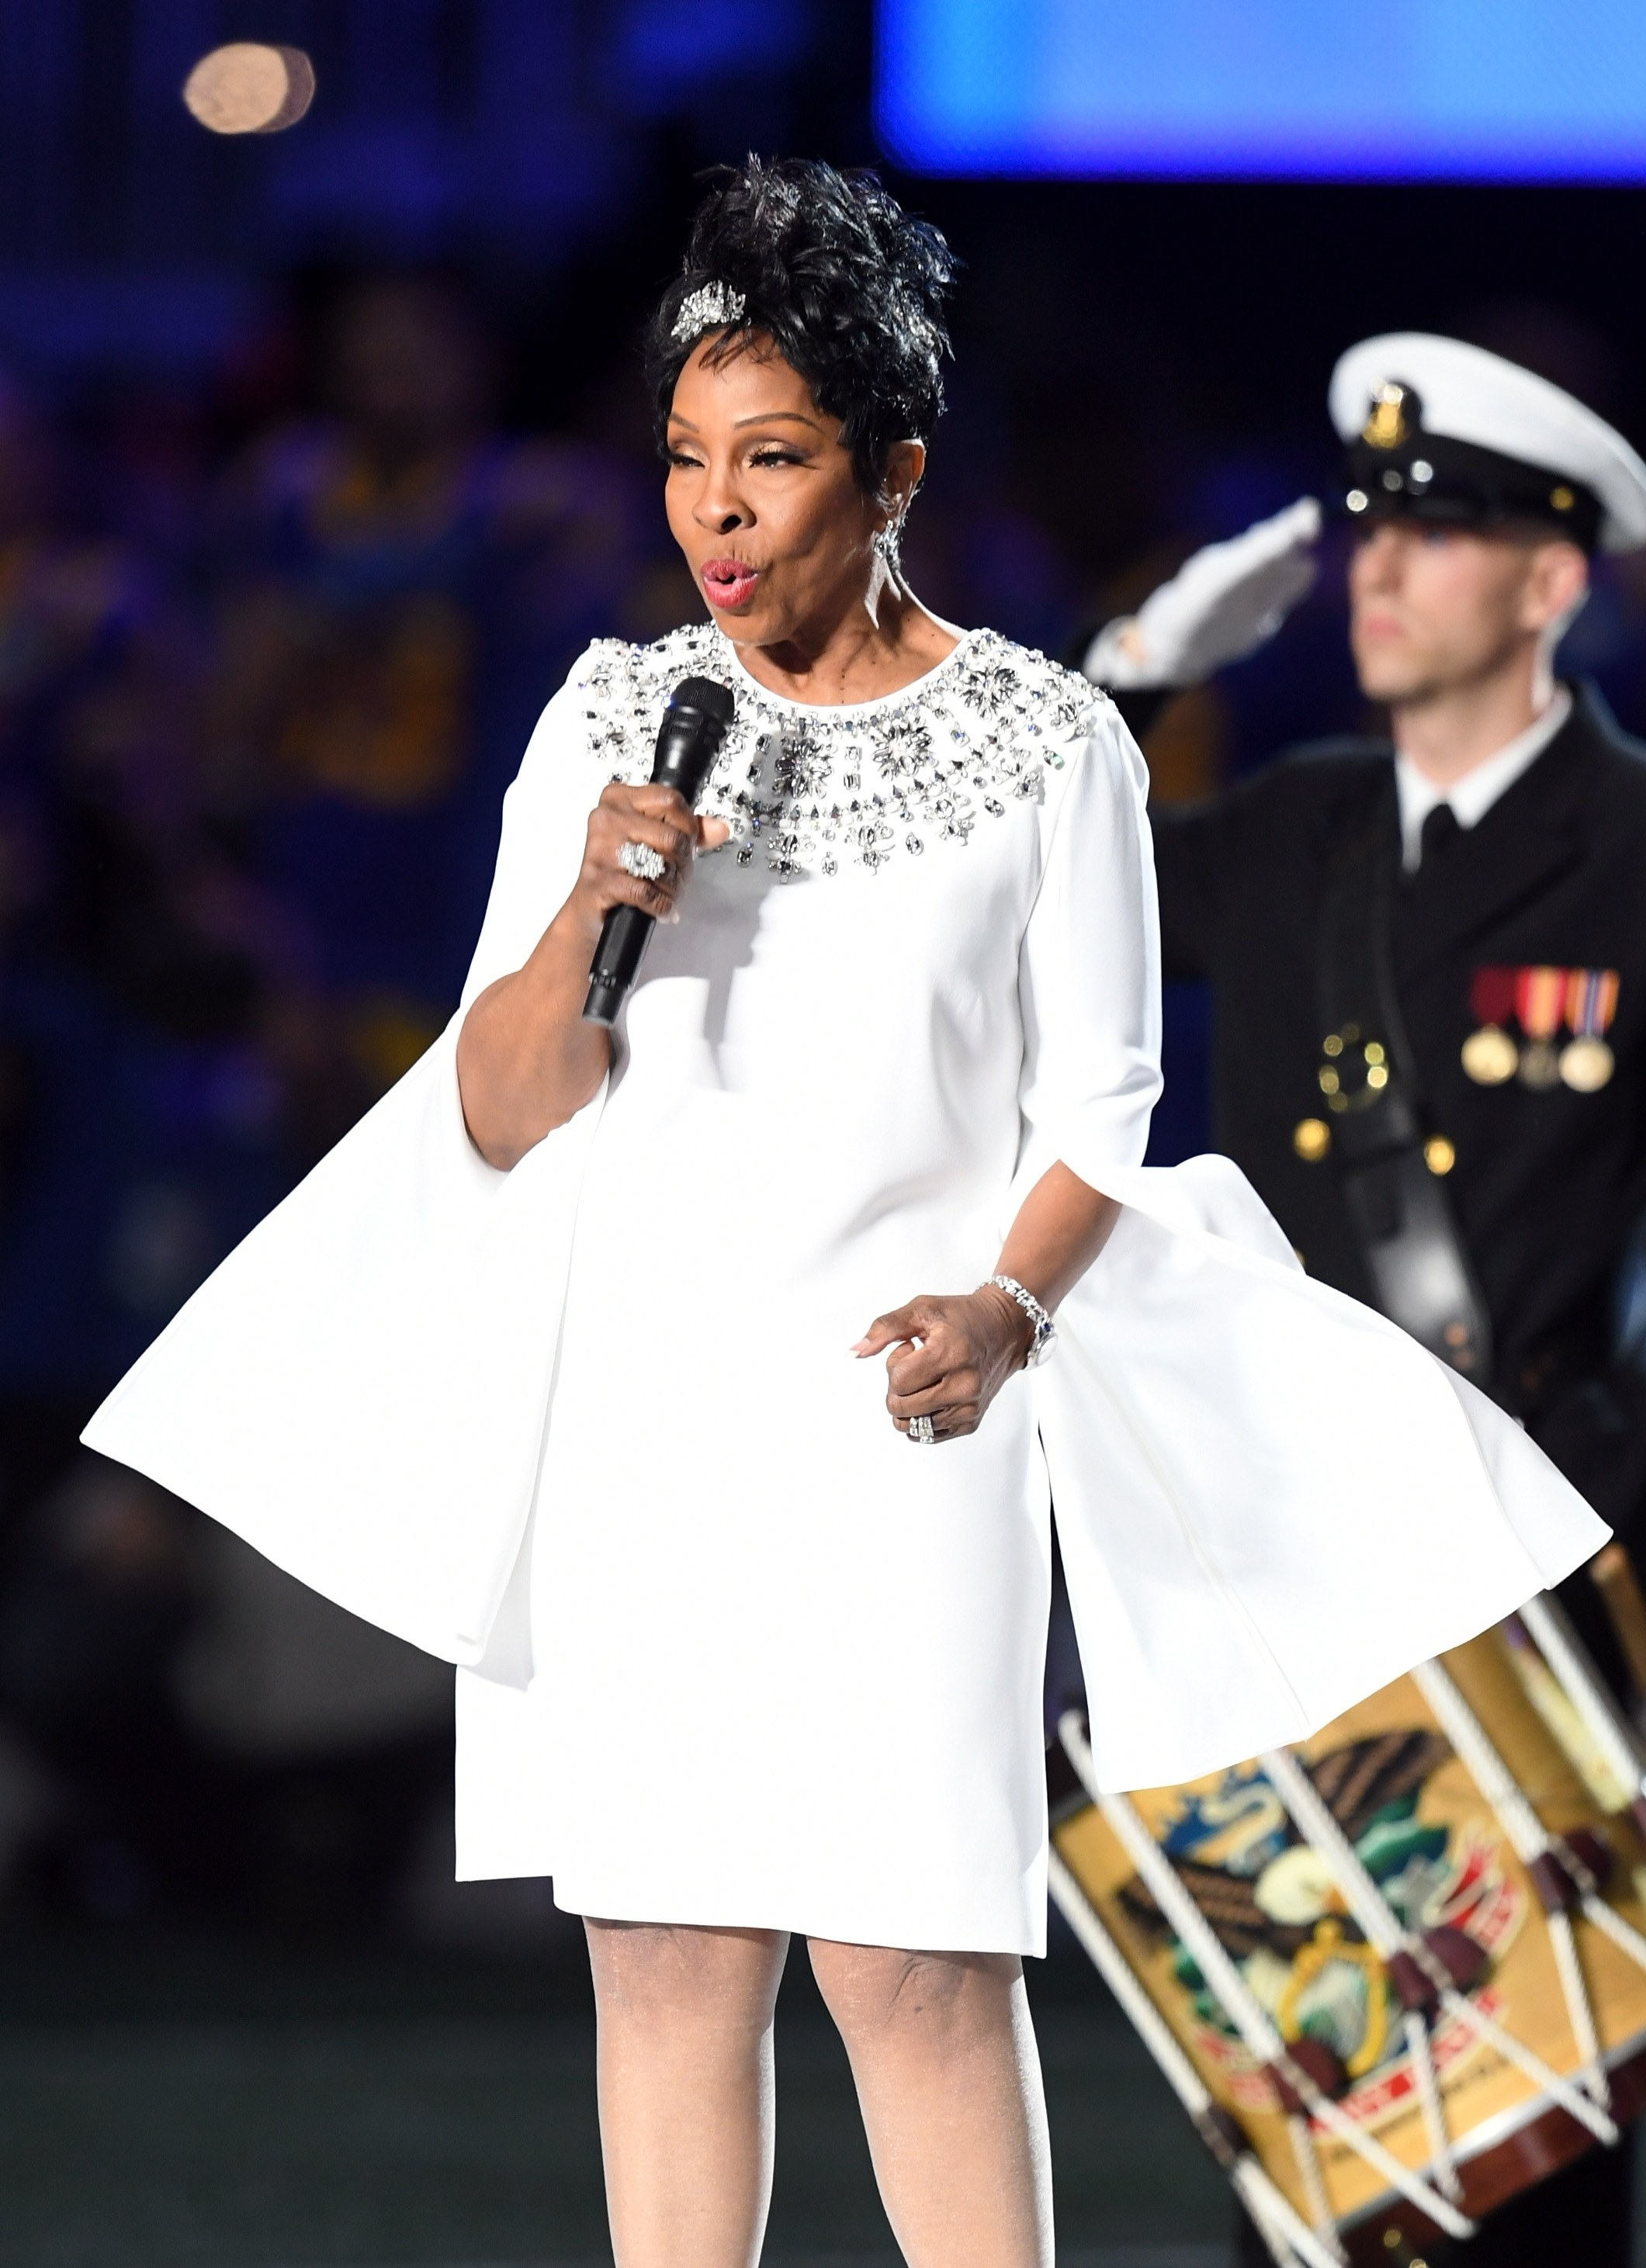 Gladys Knight Steps Out In All White For The National Anthem for Super Bowl Gladys Knight